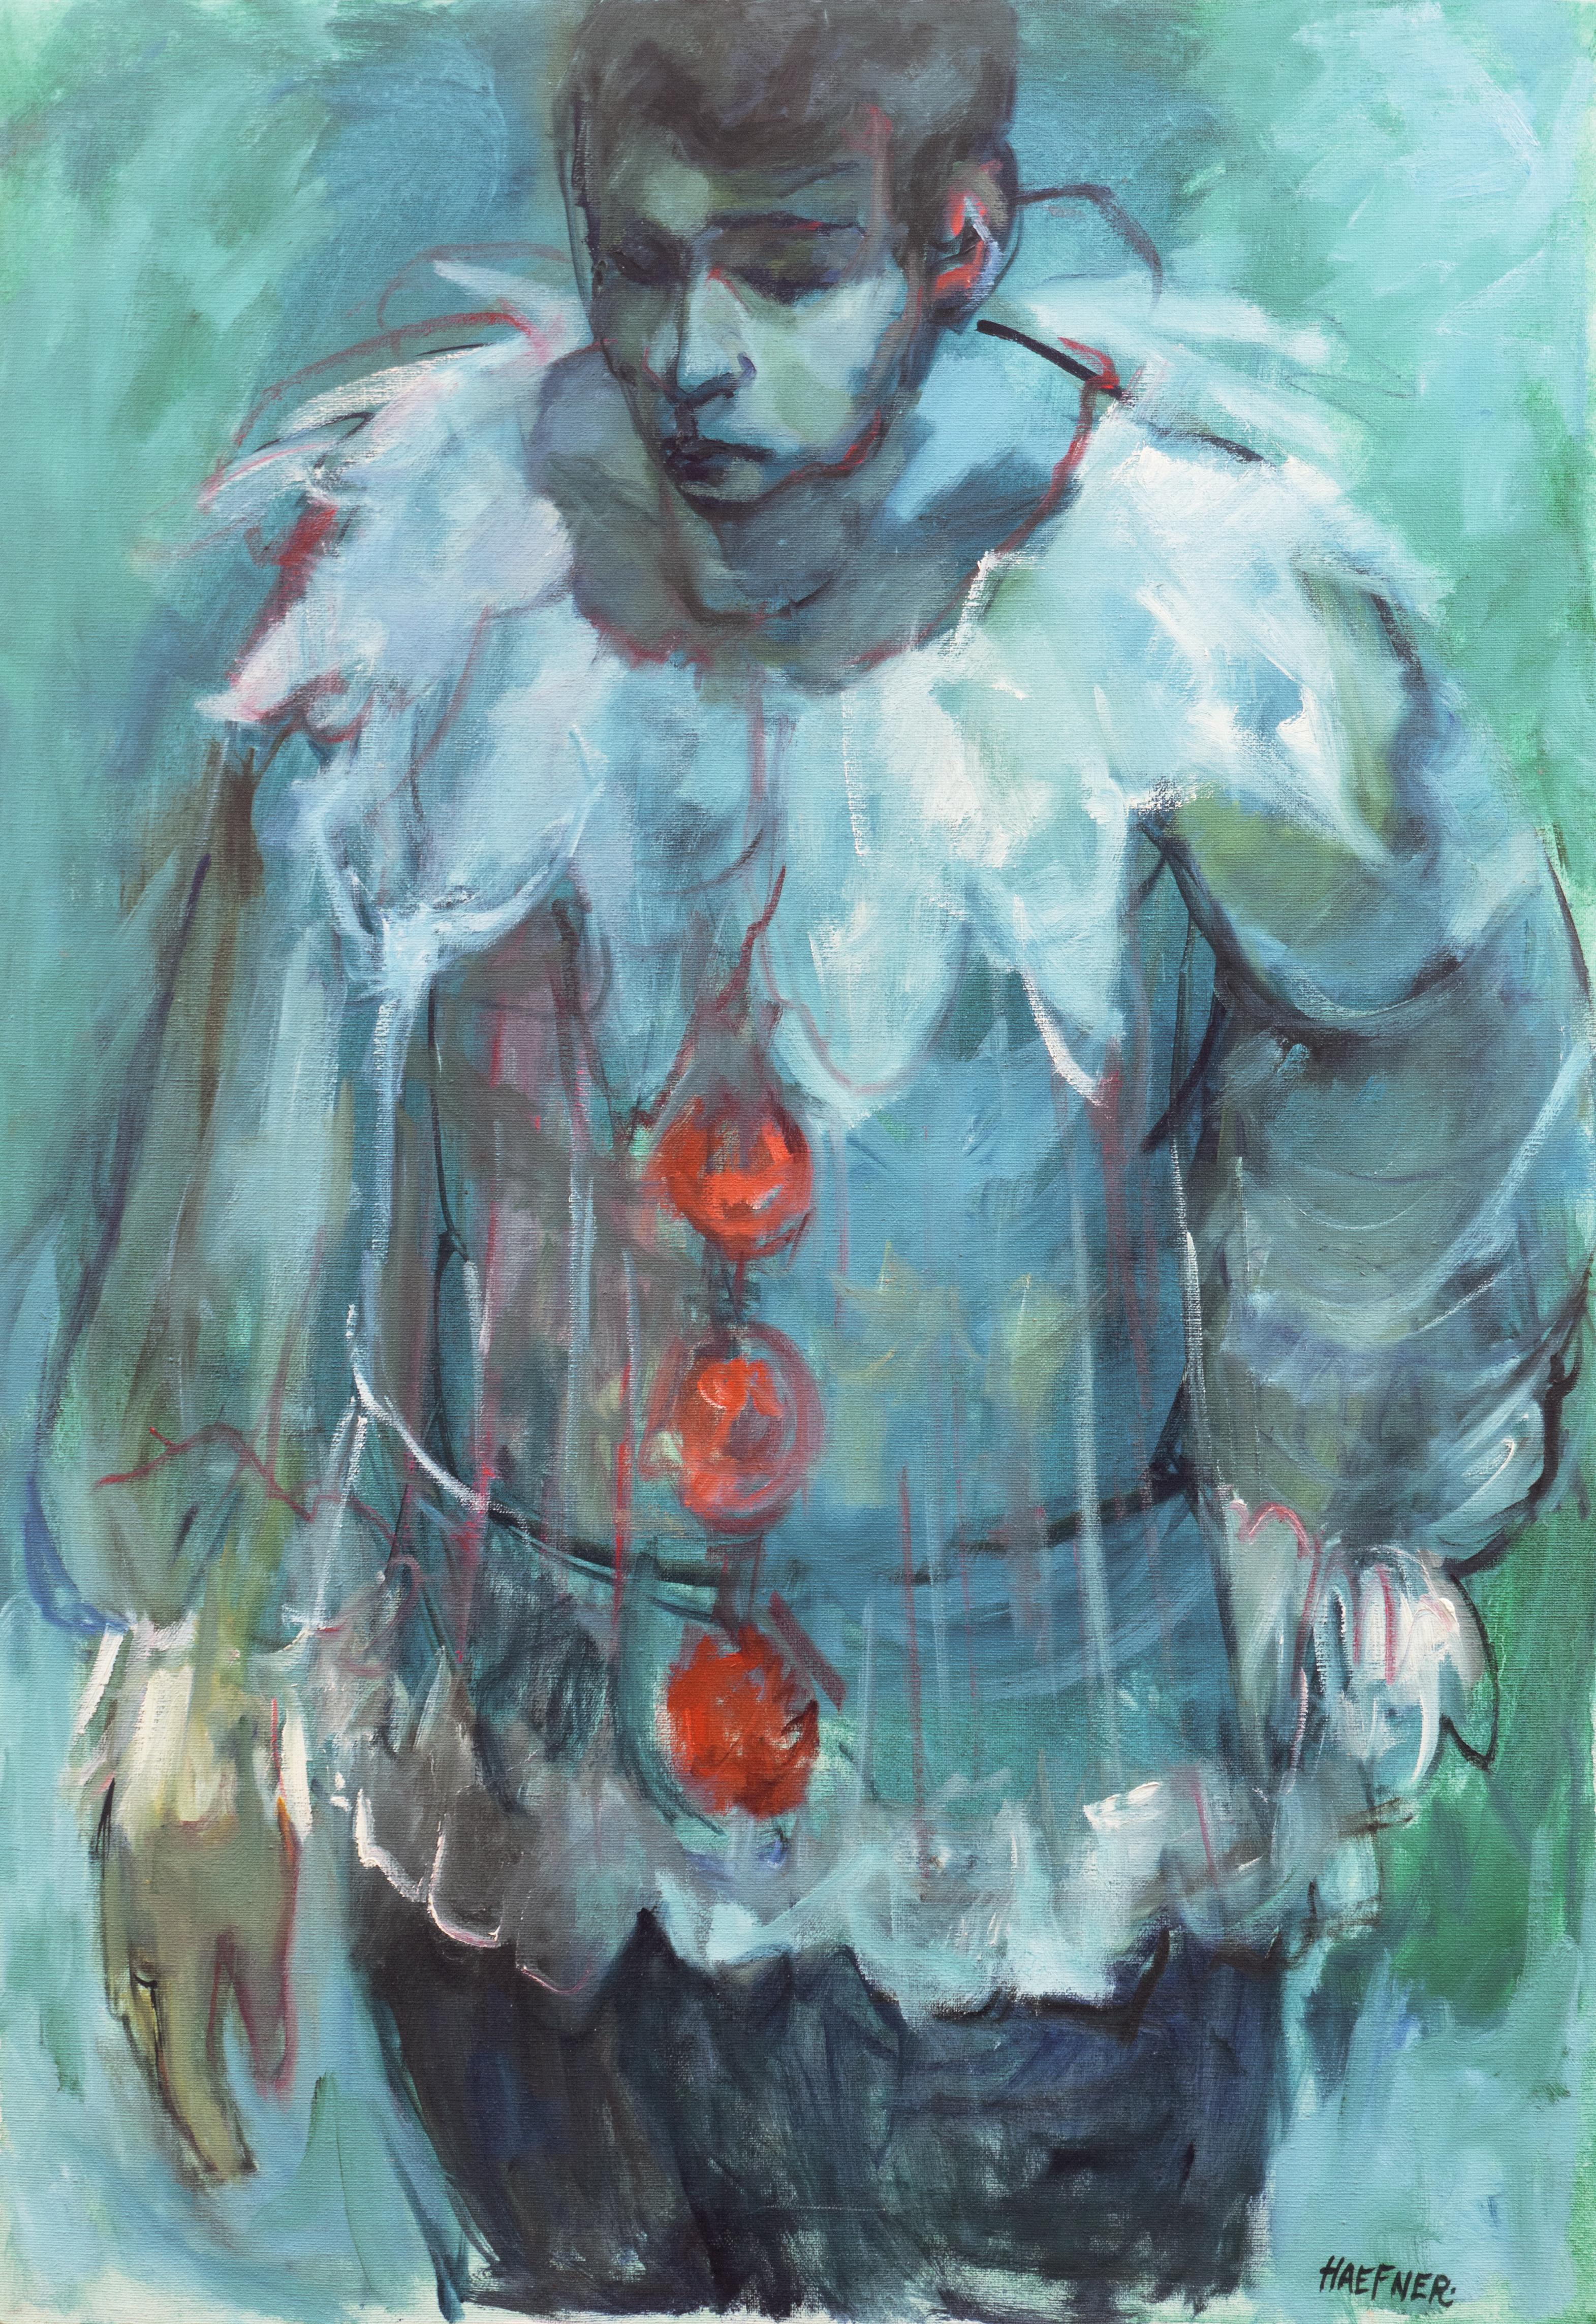 'Pierrot in Blue', Large Figural Oil by Early Los Altos, California Modernist